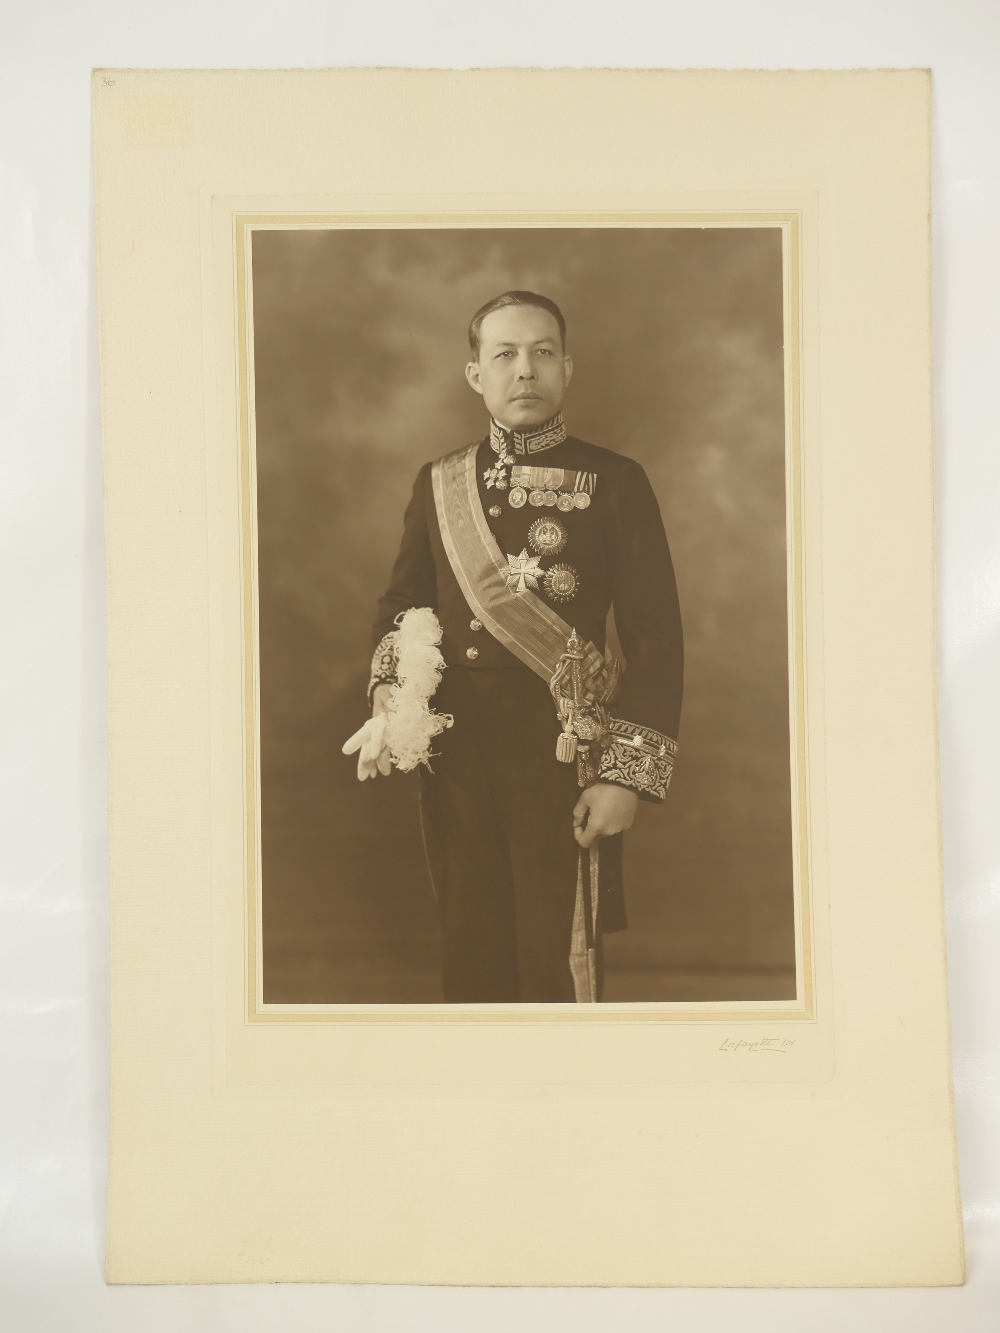 Lot 10 - Siamese (now Thailand) minister vice admiral Phya Rajawangsan ambassador of Thailand to the United